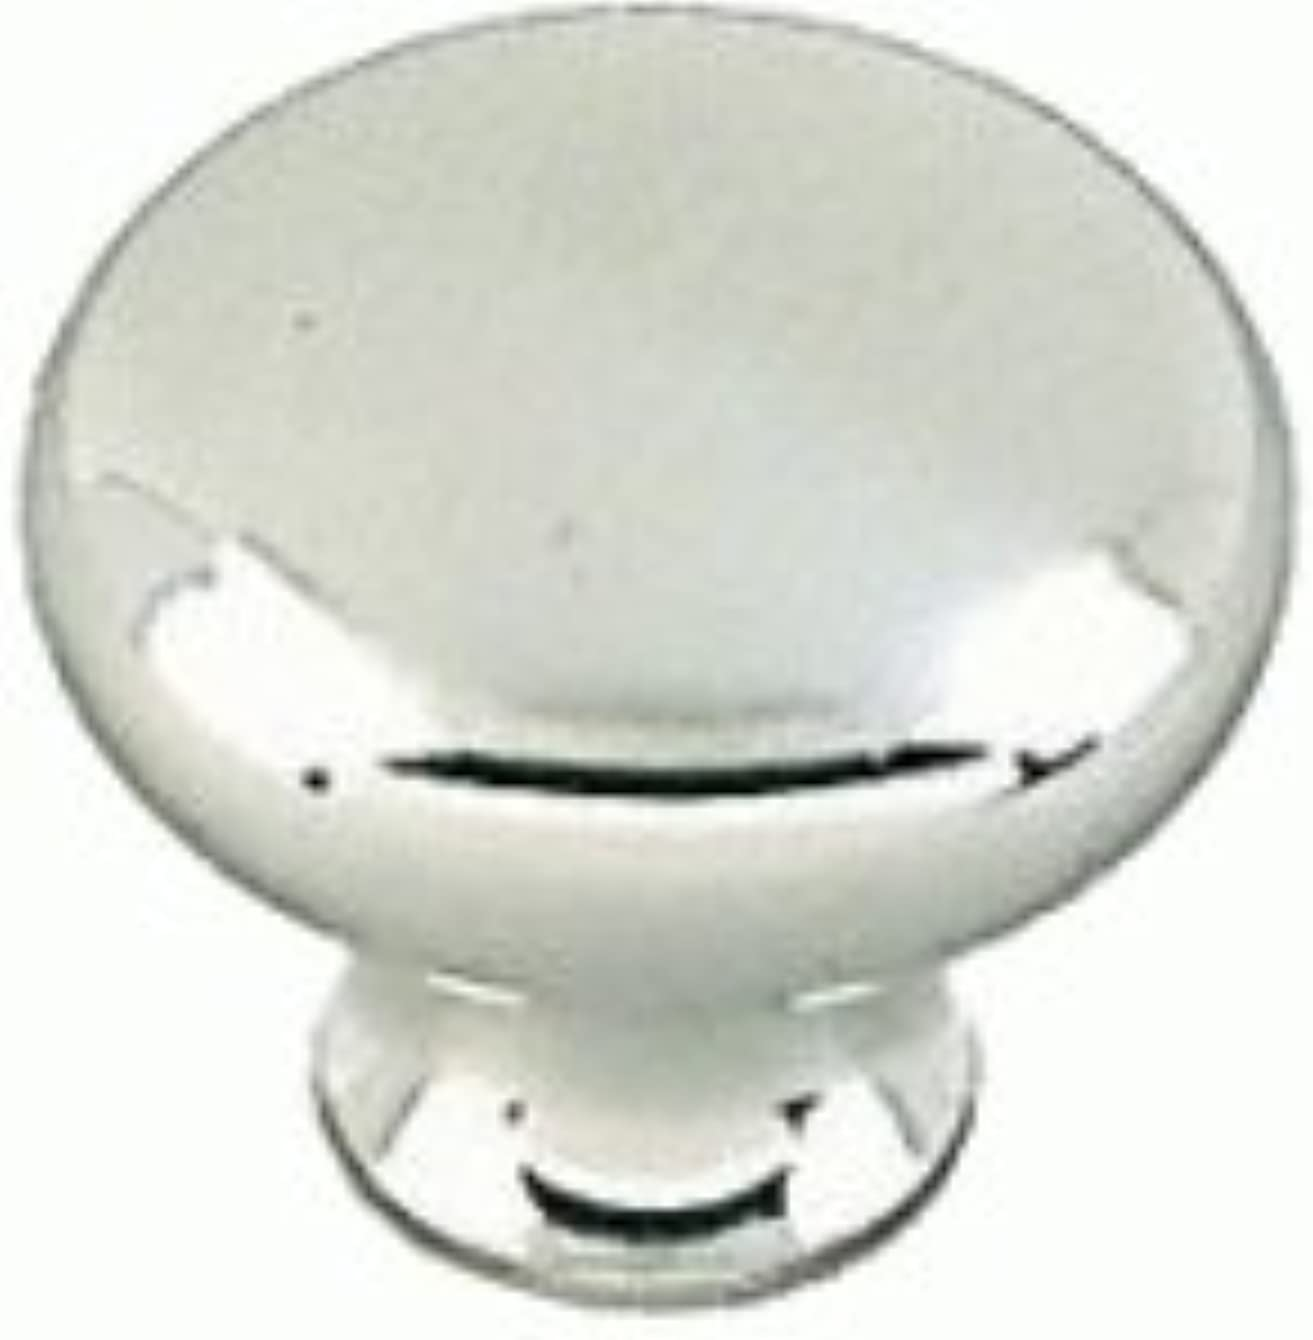 Amerock BP1471PWT Anniversary Bp85326 Round Cabinet Knob, 1 in Projection, 1-3/16 in Dia, Zinc Alloy, Polished Chrome